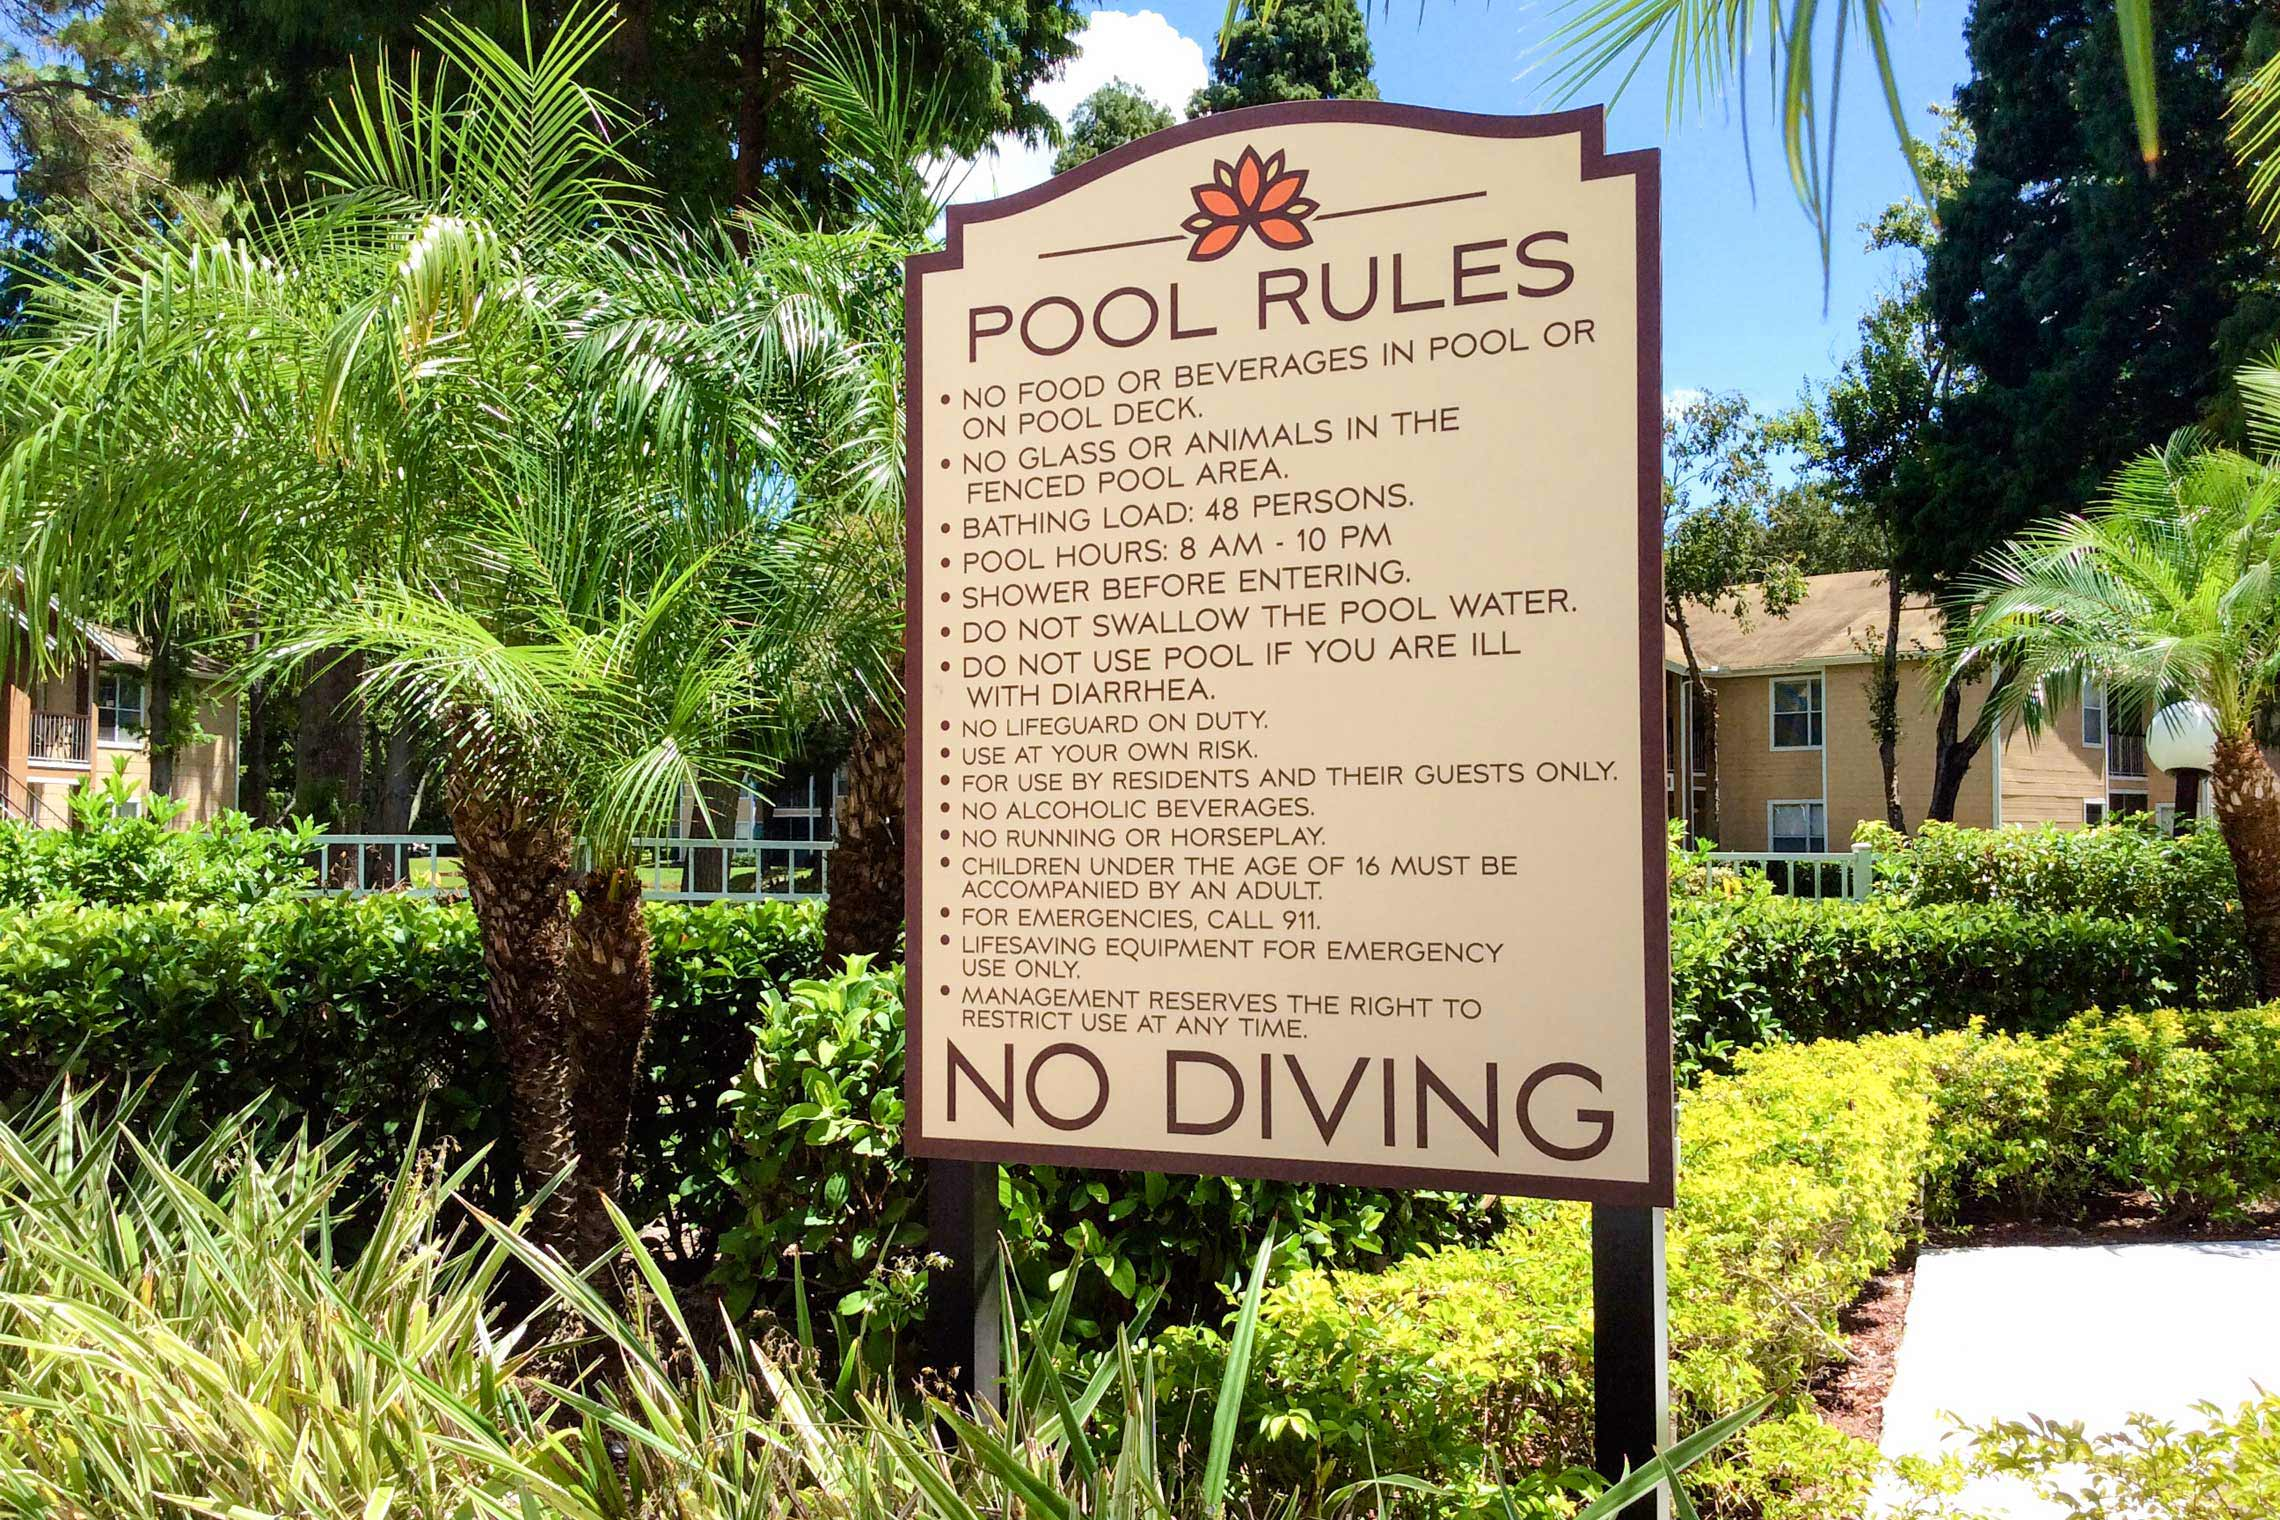 Retreat at Crosstown Apartment Homes Swimming Pool Rules on Post